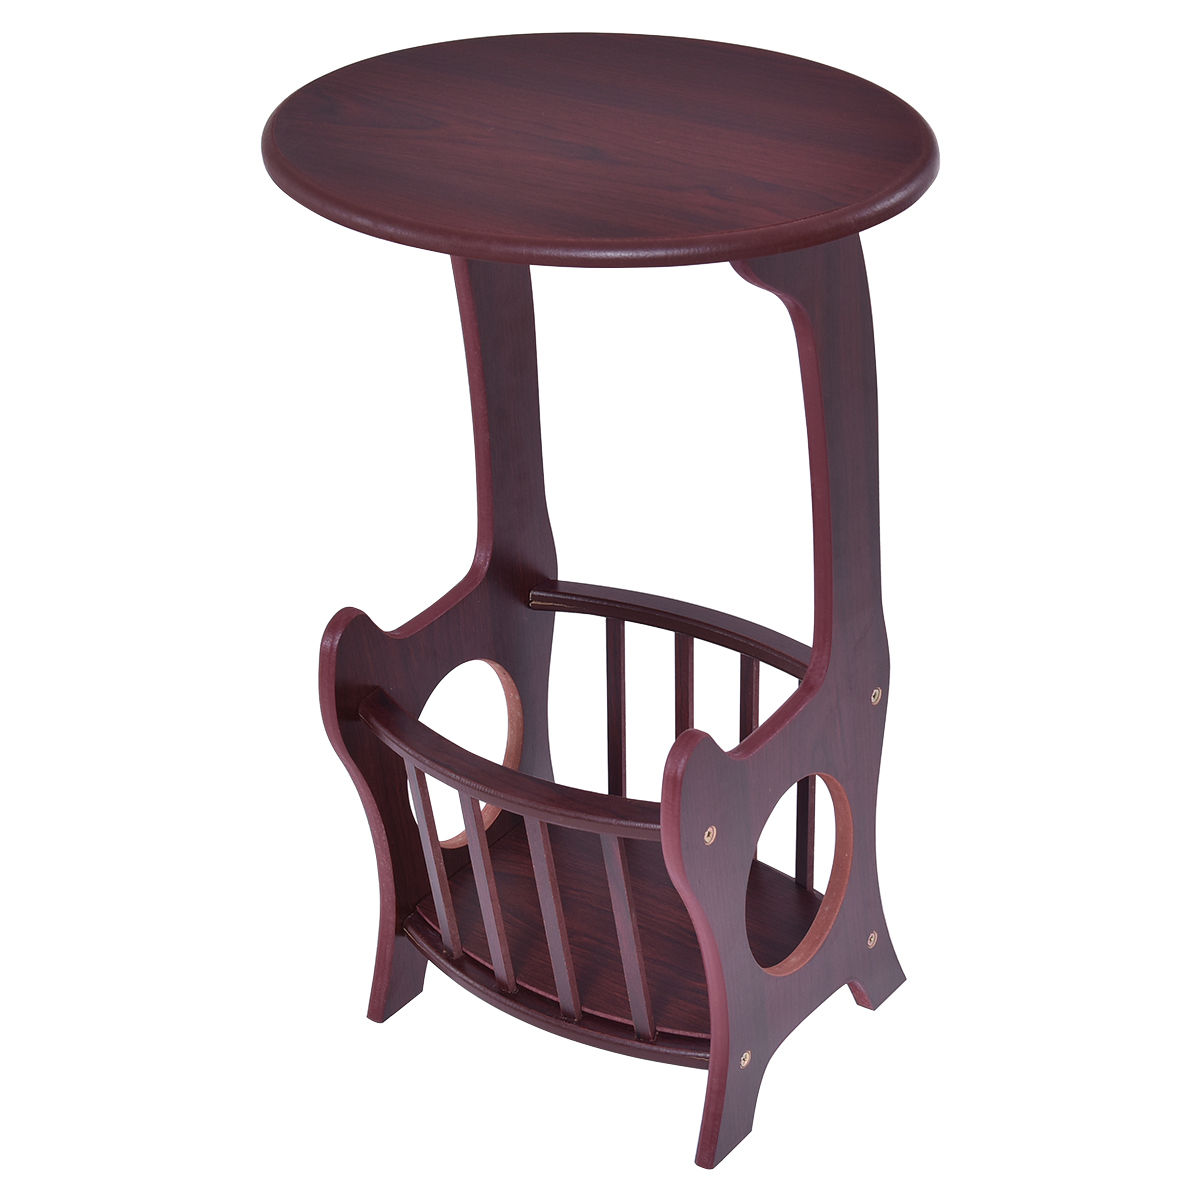 Oval Wooden End Table Coffee Table HW53922